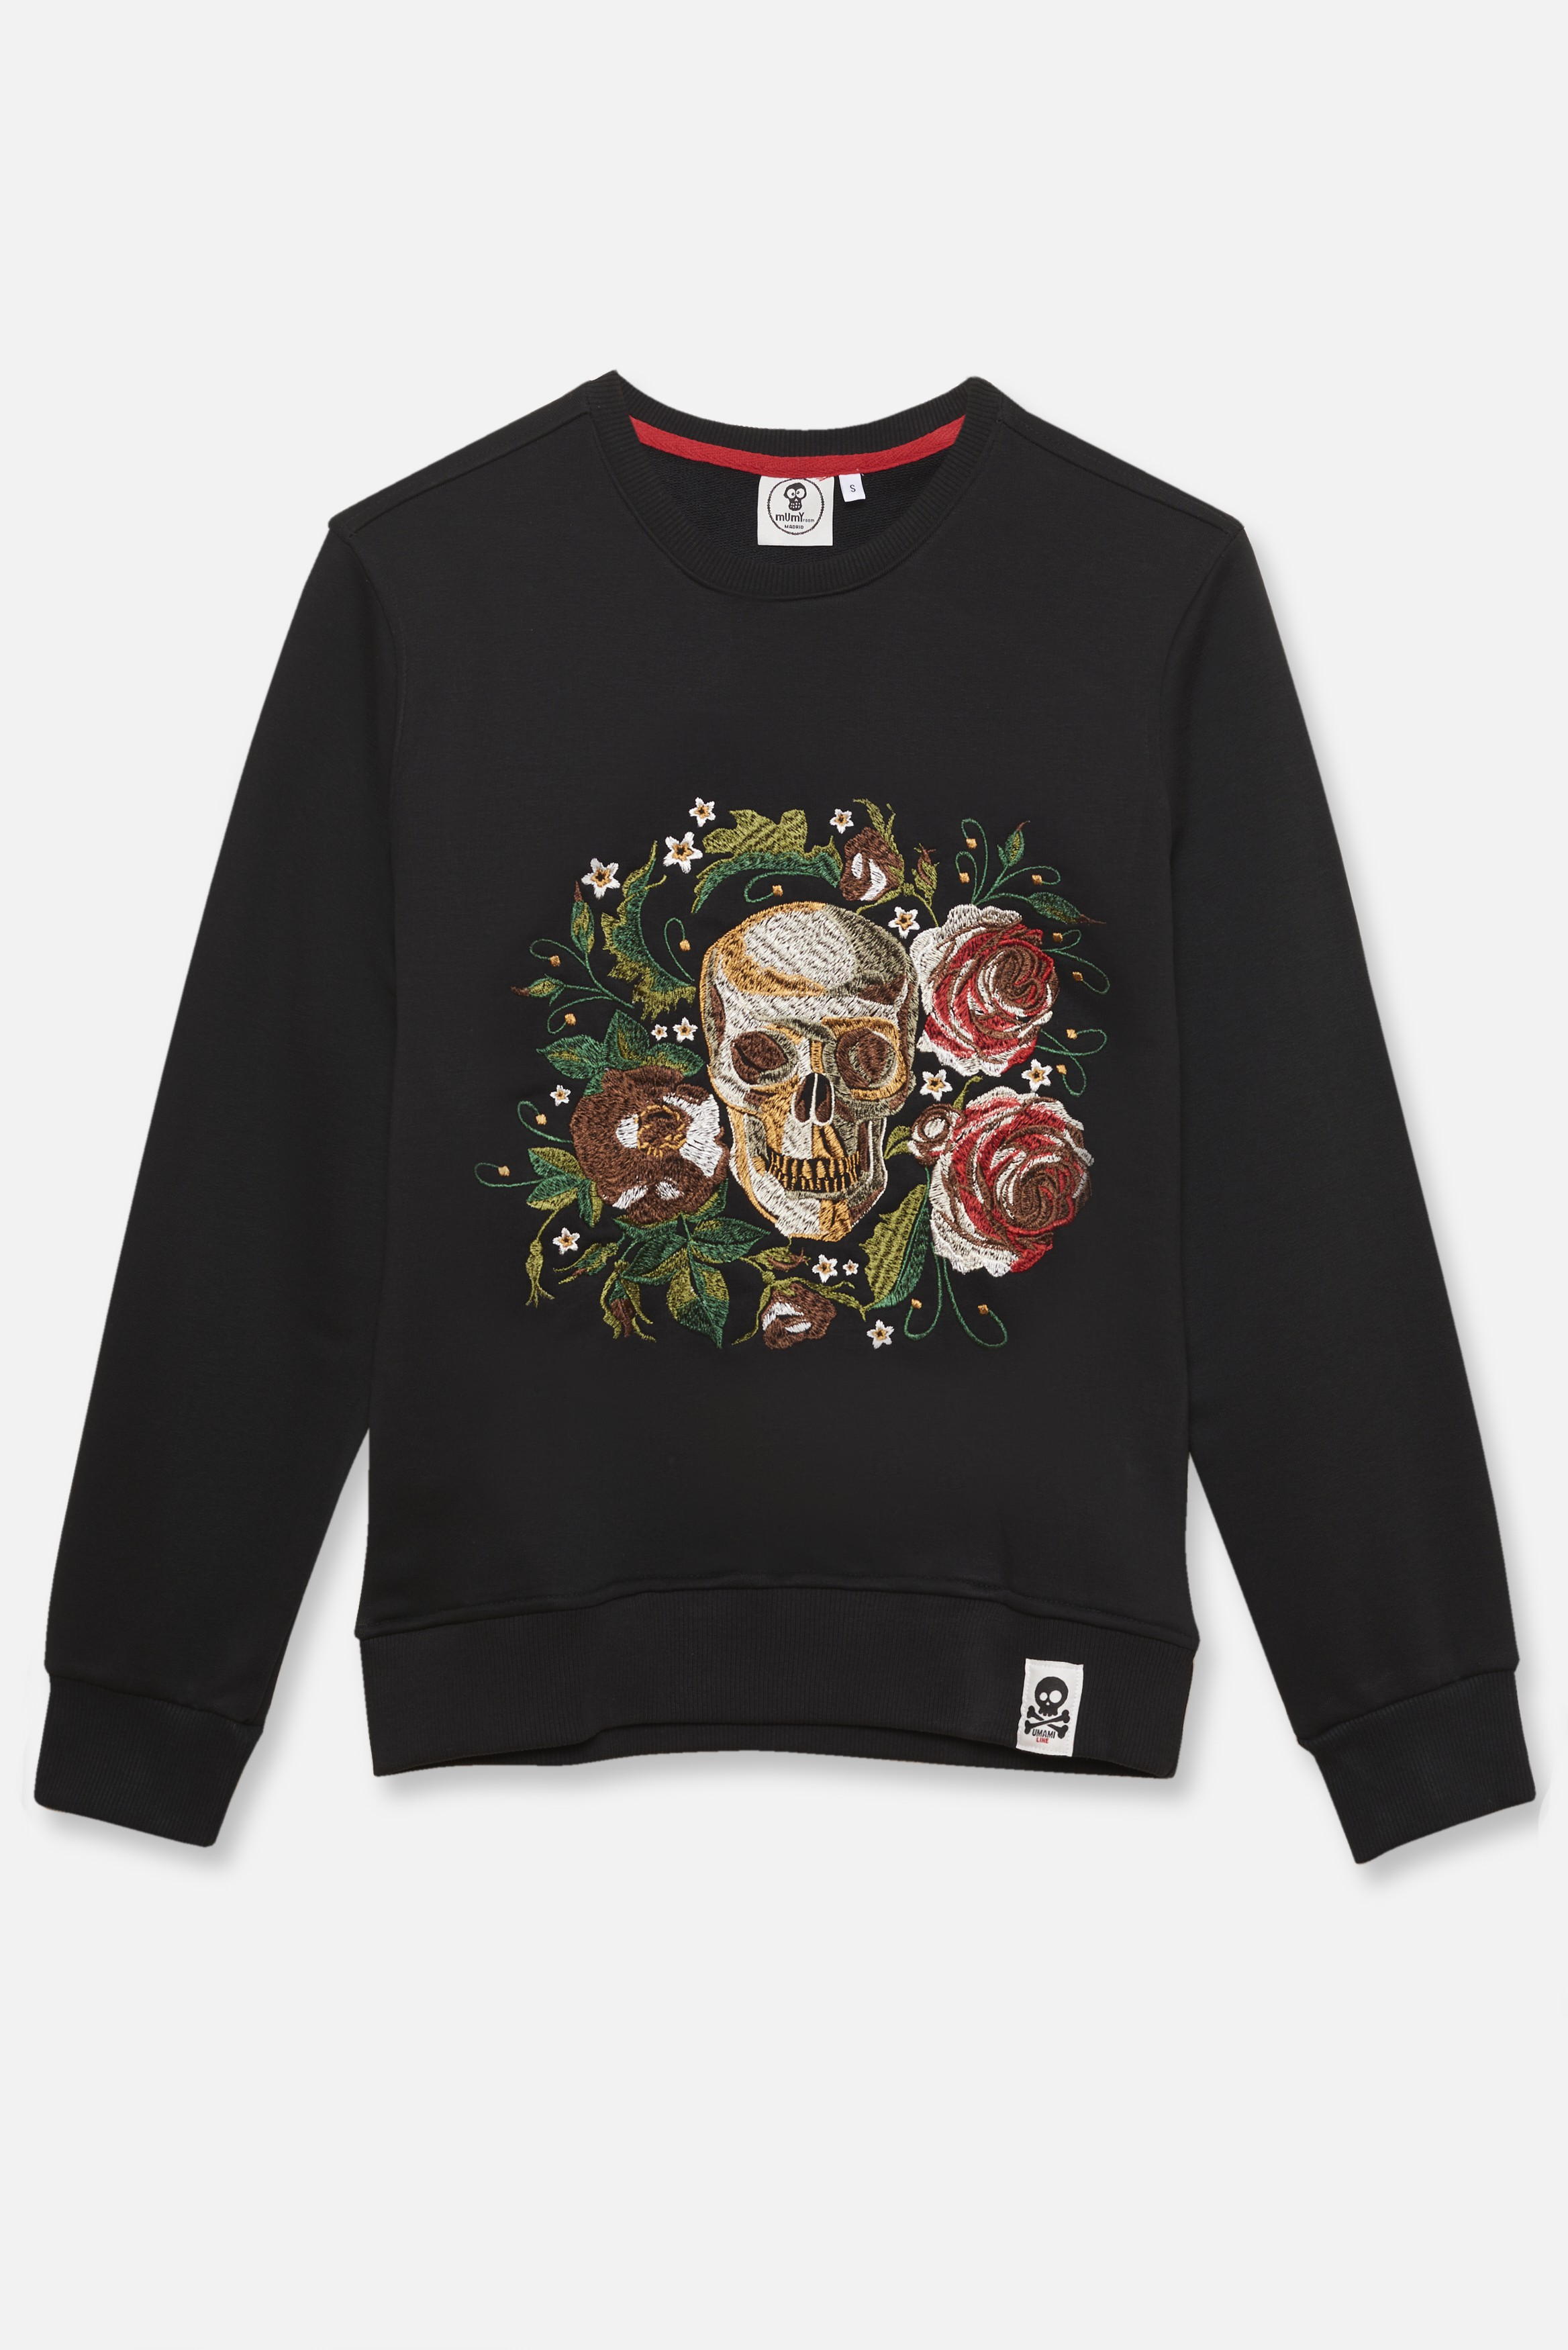 KID´S EMBROIDERED JERSEY UMAMI LINE SKULL AND THREE ROSES